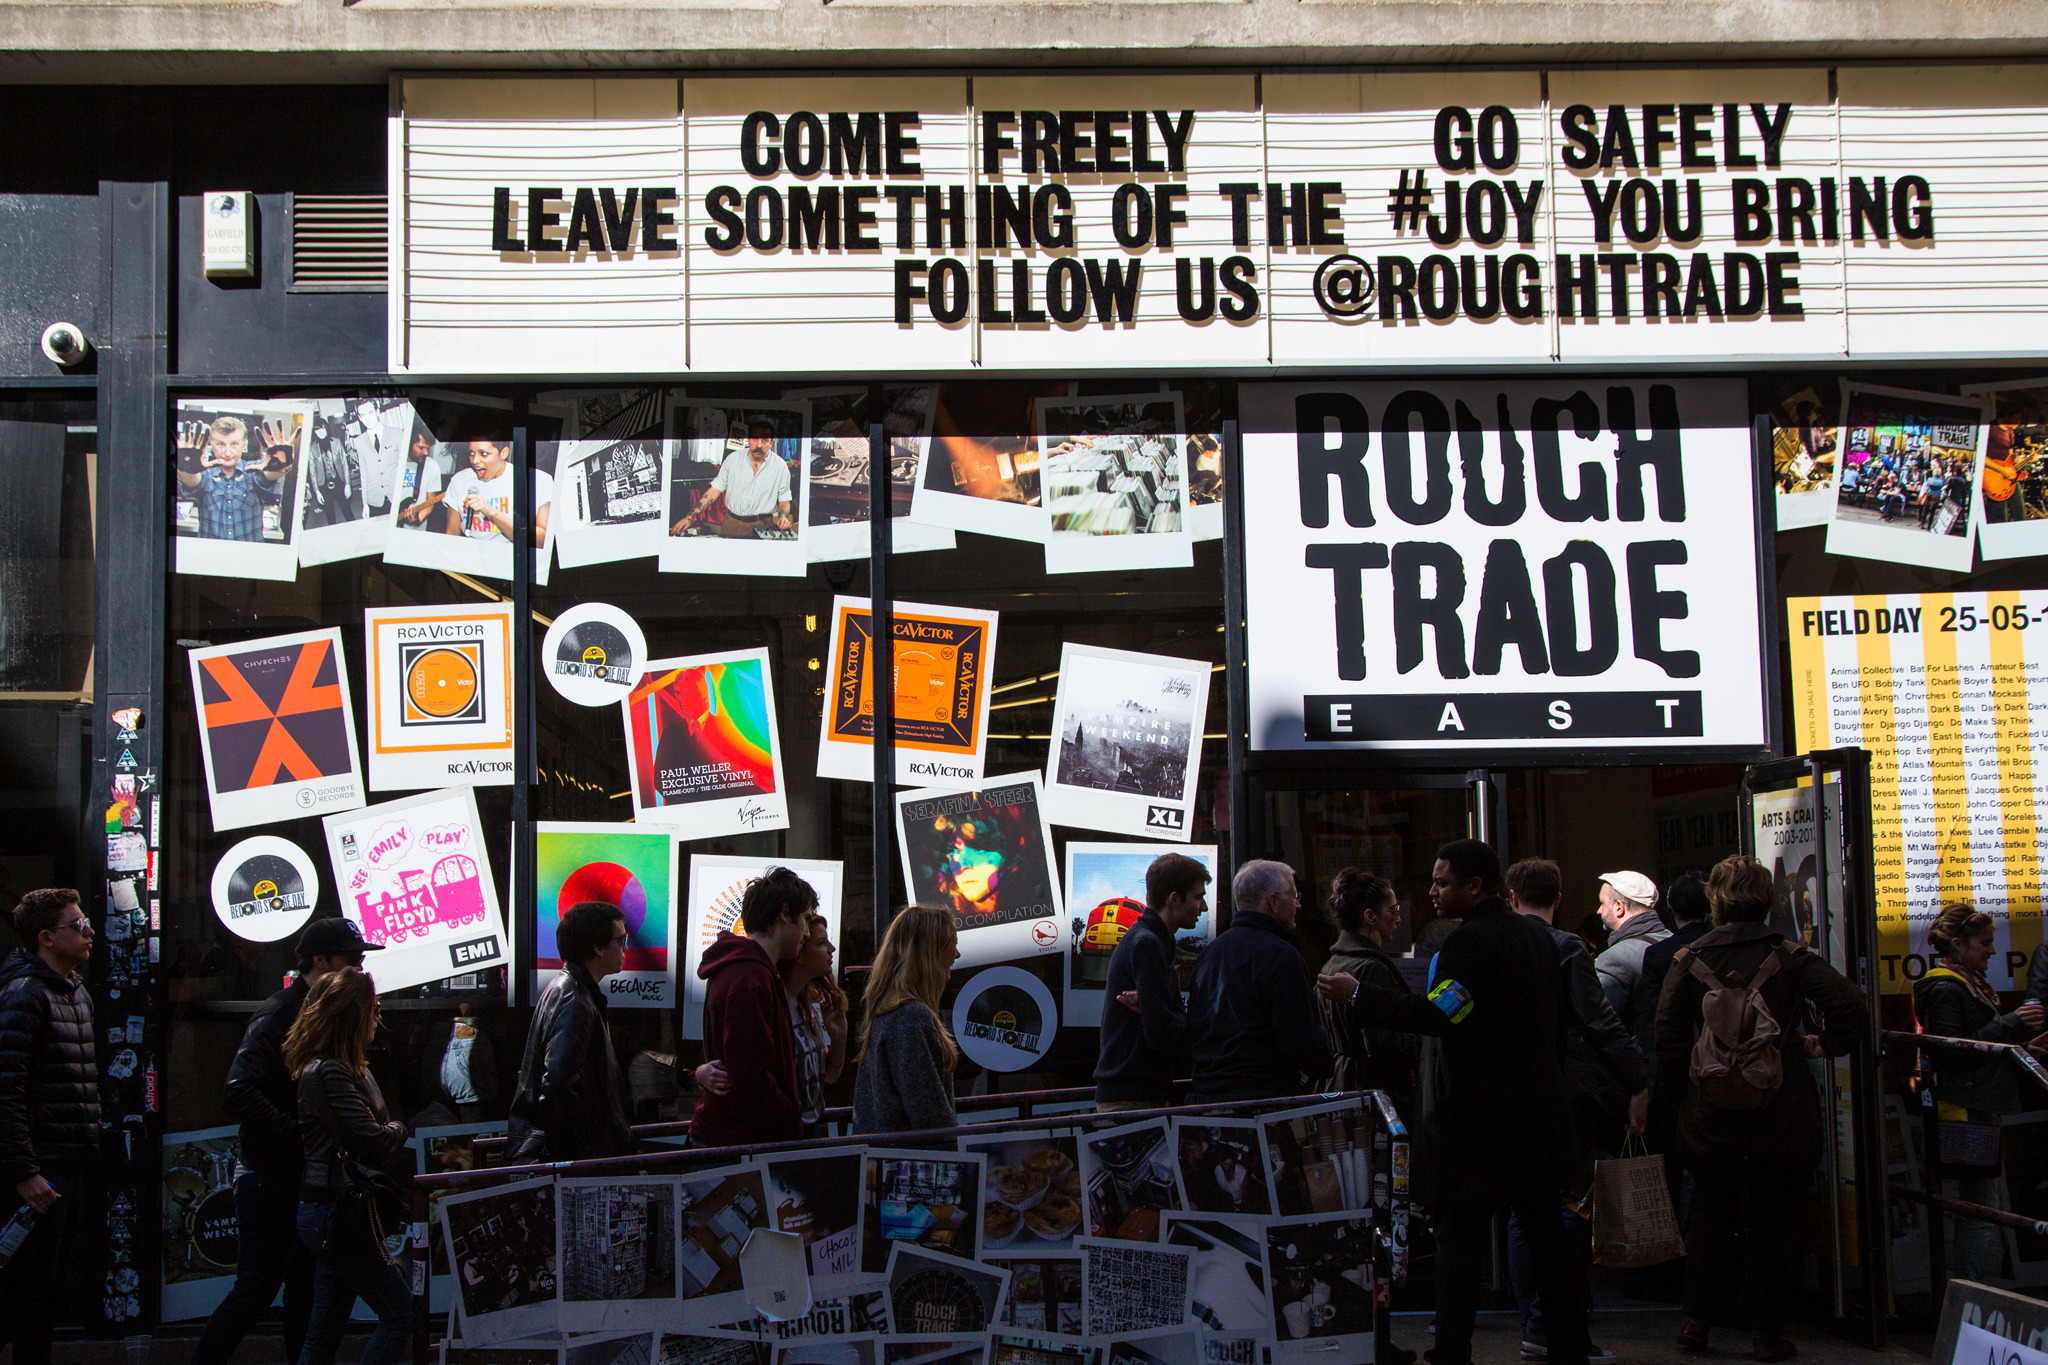 Geek out with other audiophiles at Rough Trade